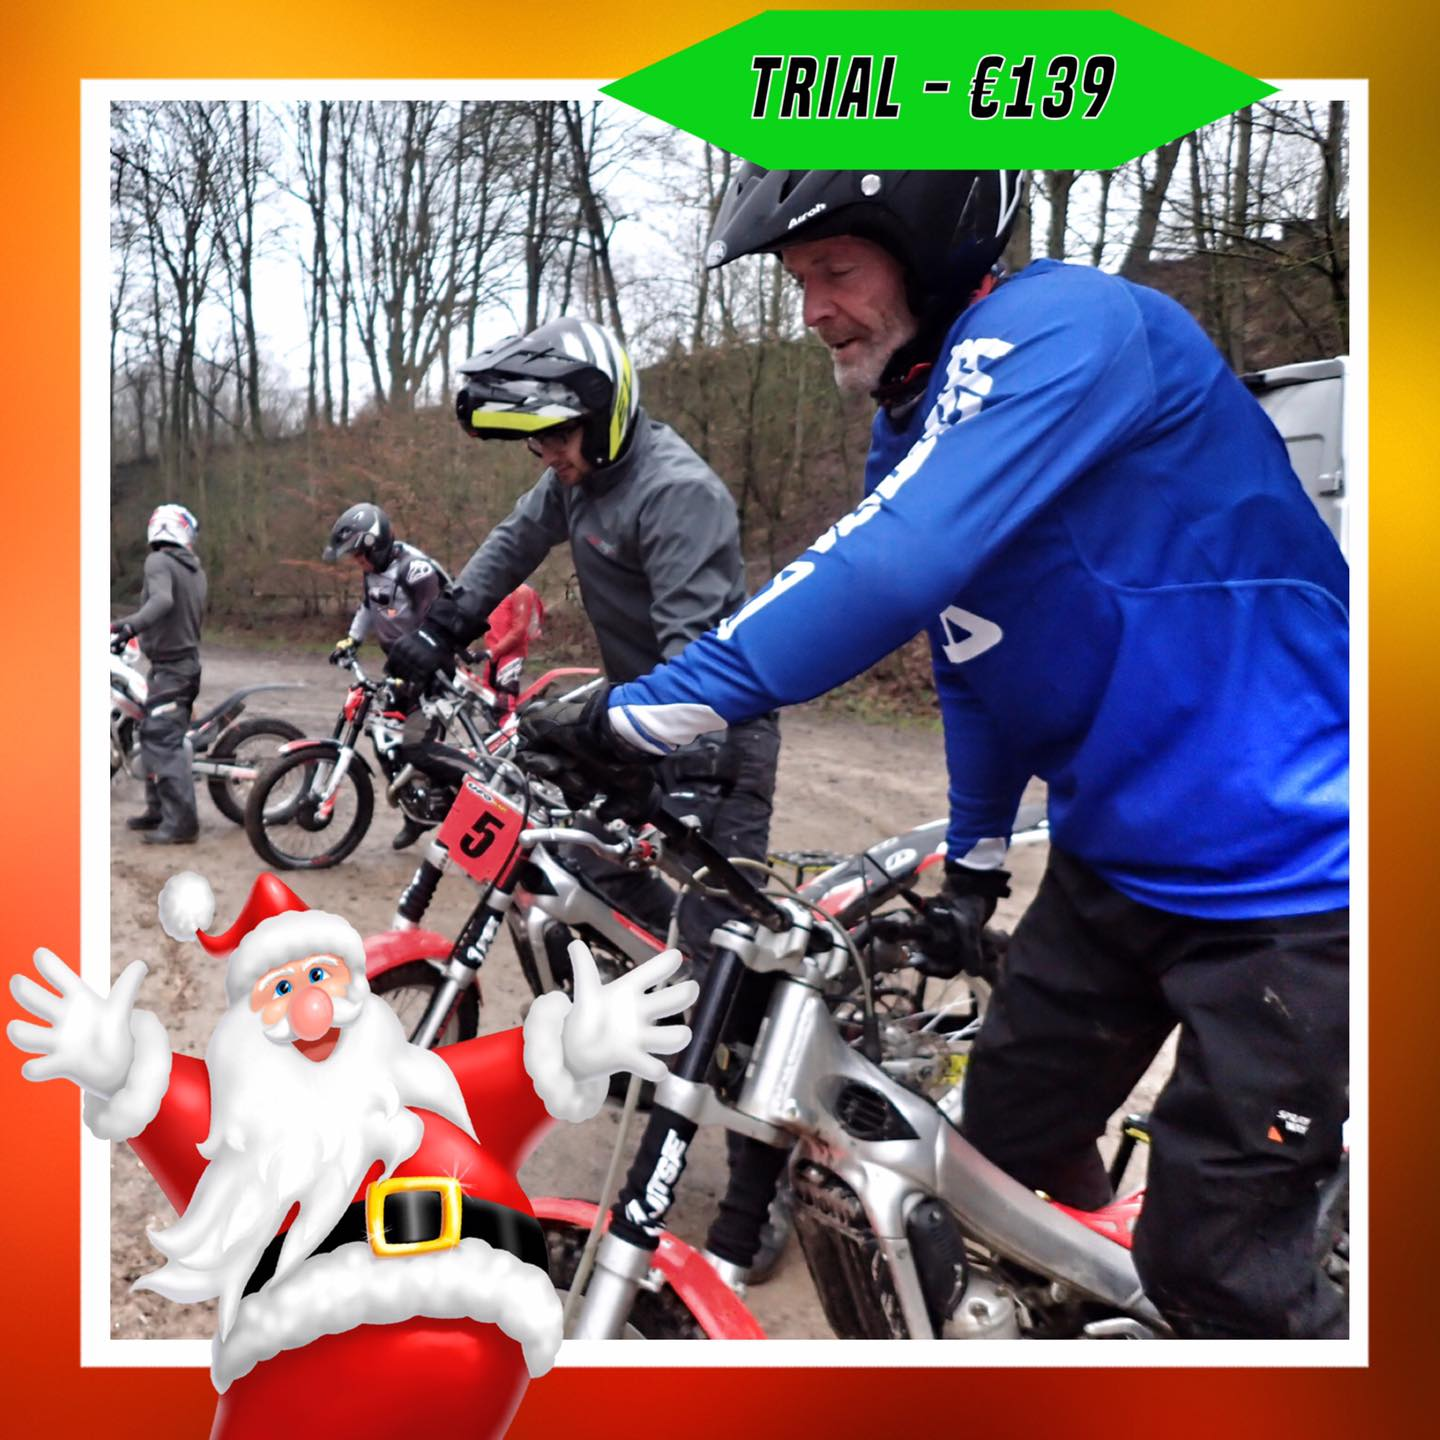 Kerst-initiaties Bilstain Endurofun 29